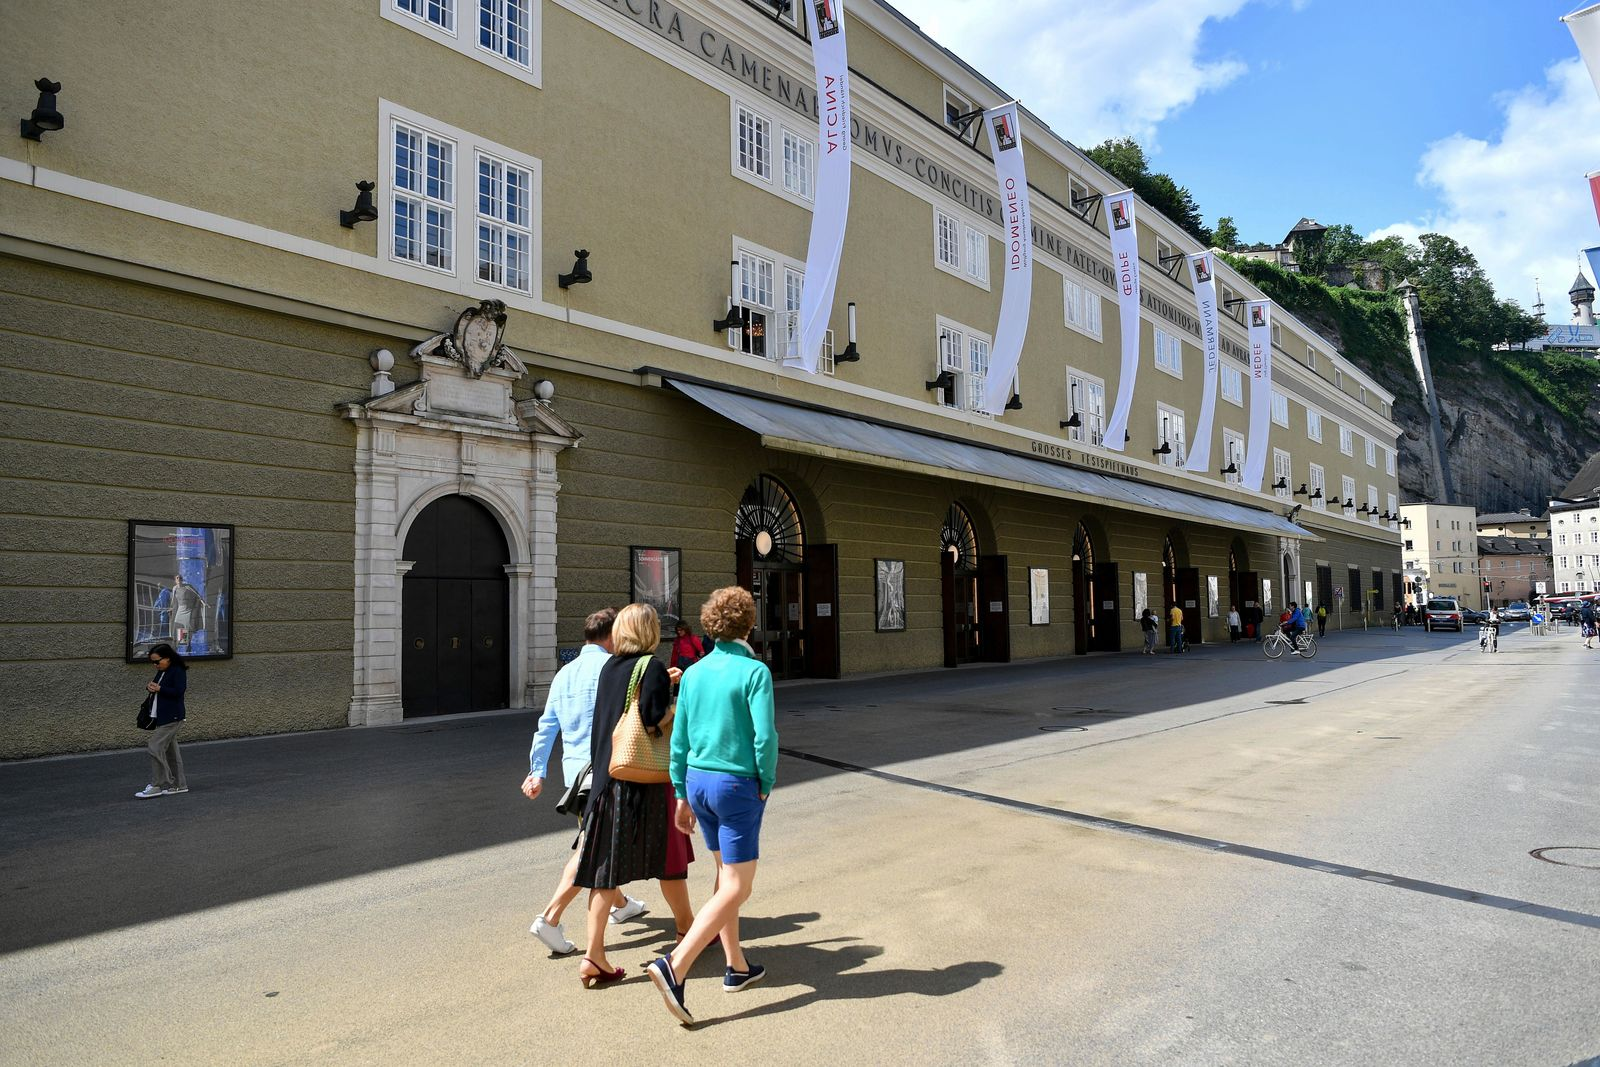 Out side view of the opera house in Salzburg, Austria, Wednesday, Aug. 14, 2019 where singer Placido Domingo will perfom 'Luisa Miller' by Giuseppe Verdi. (AP Photo/Kerstin Joensson)